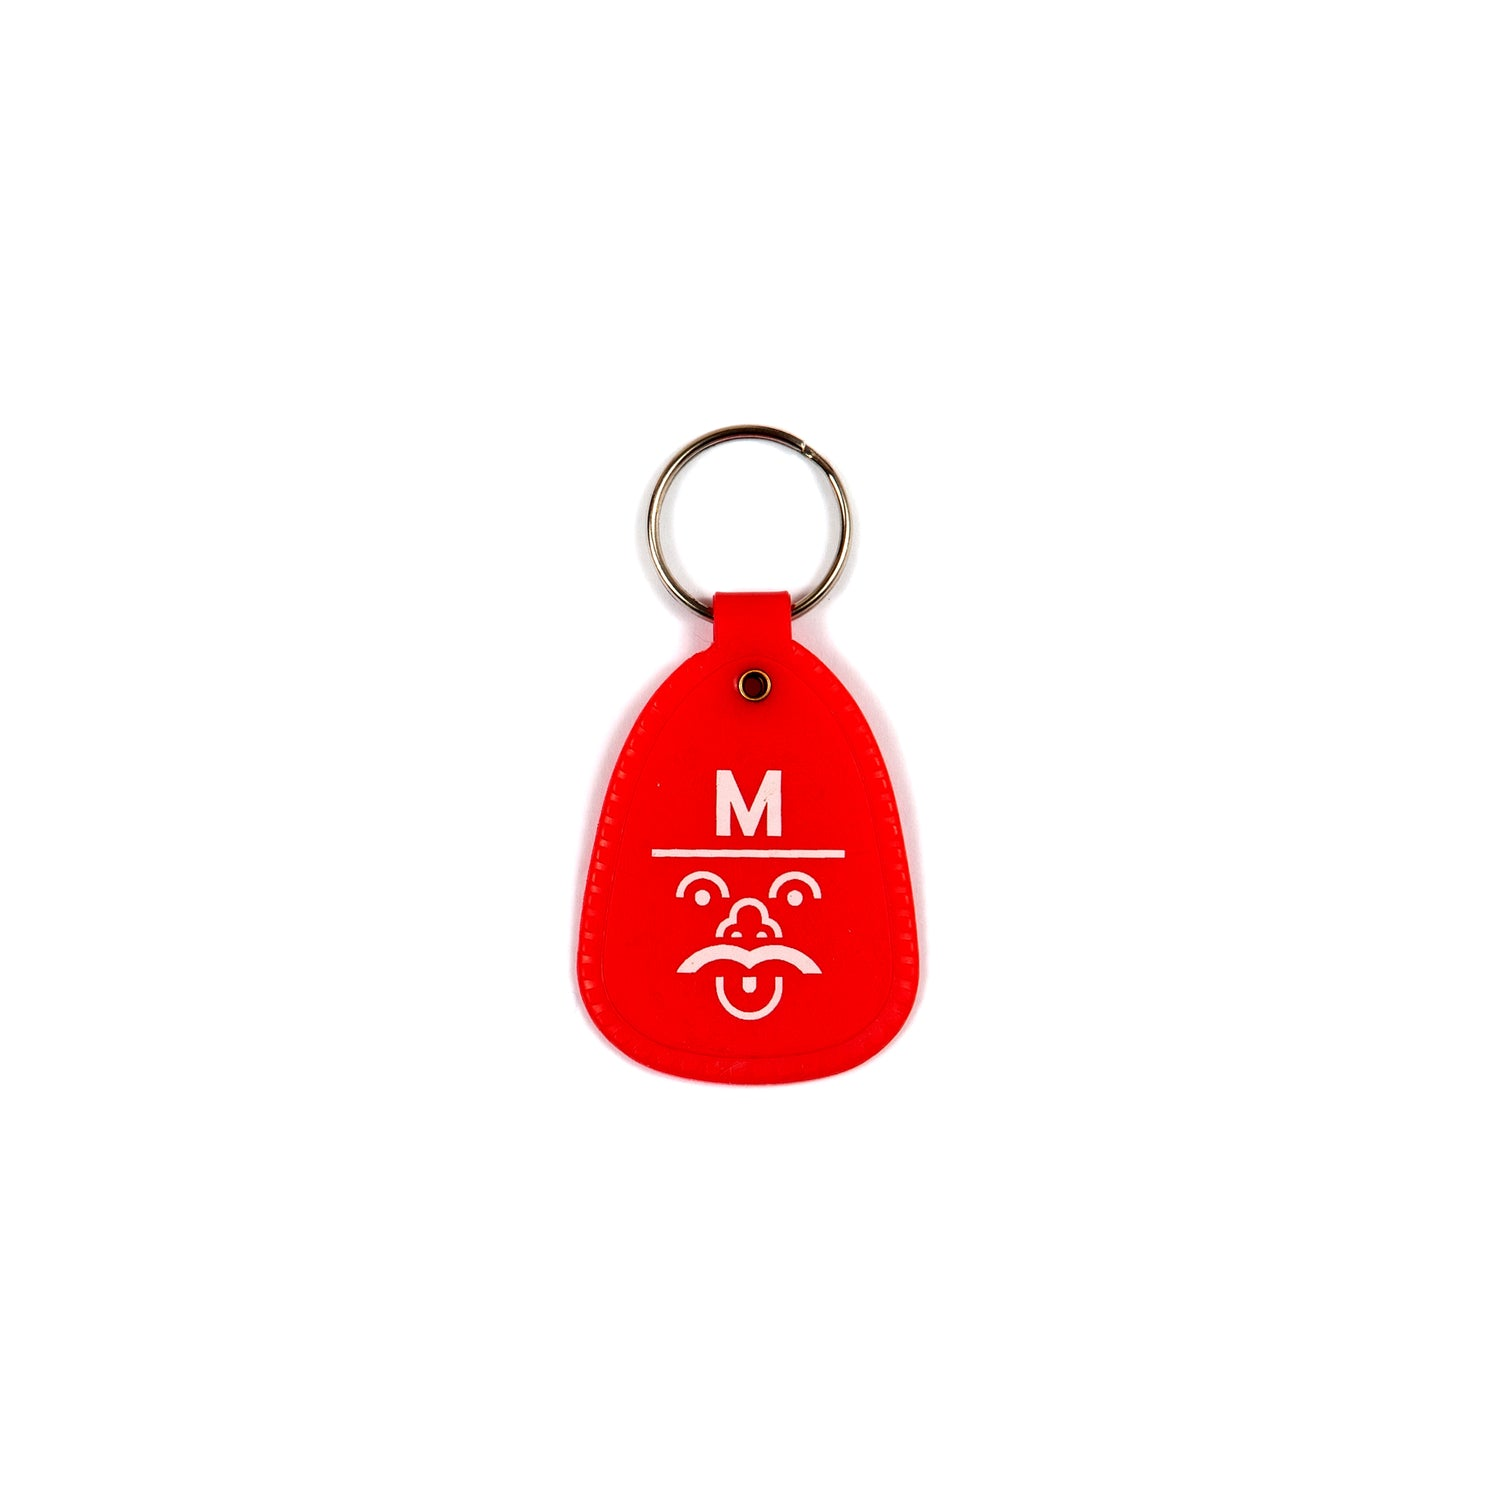 MATTY KEY CHAIN